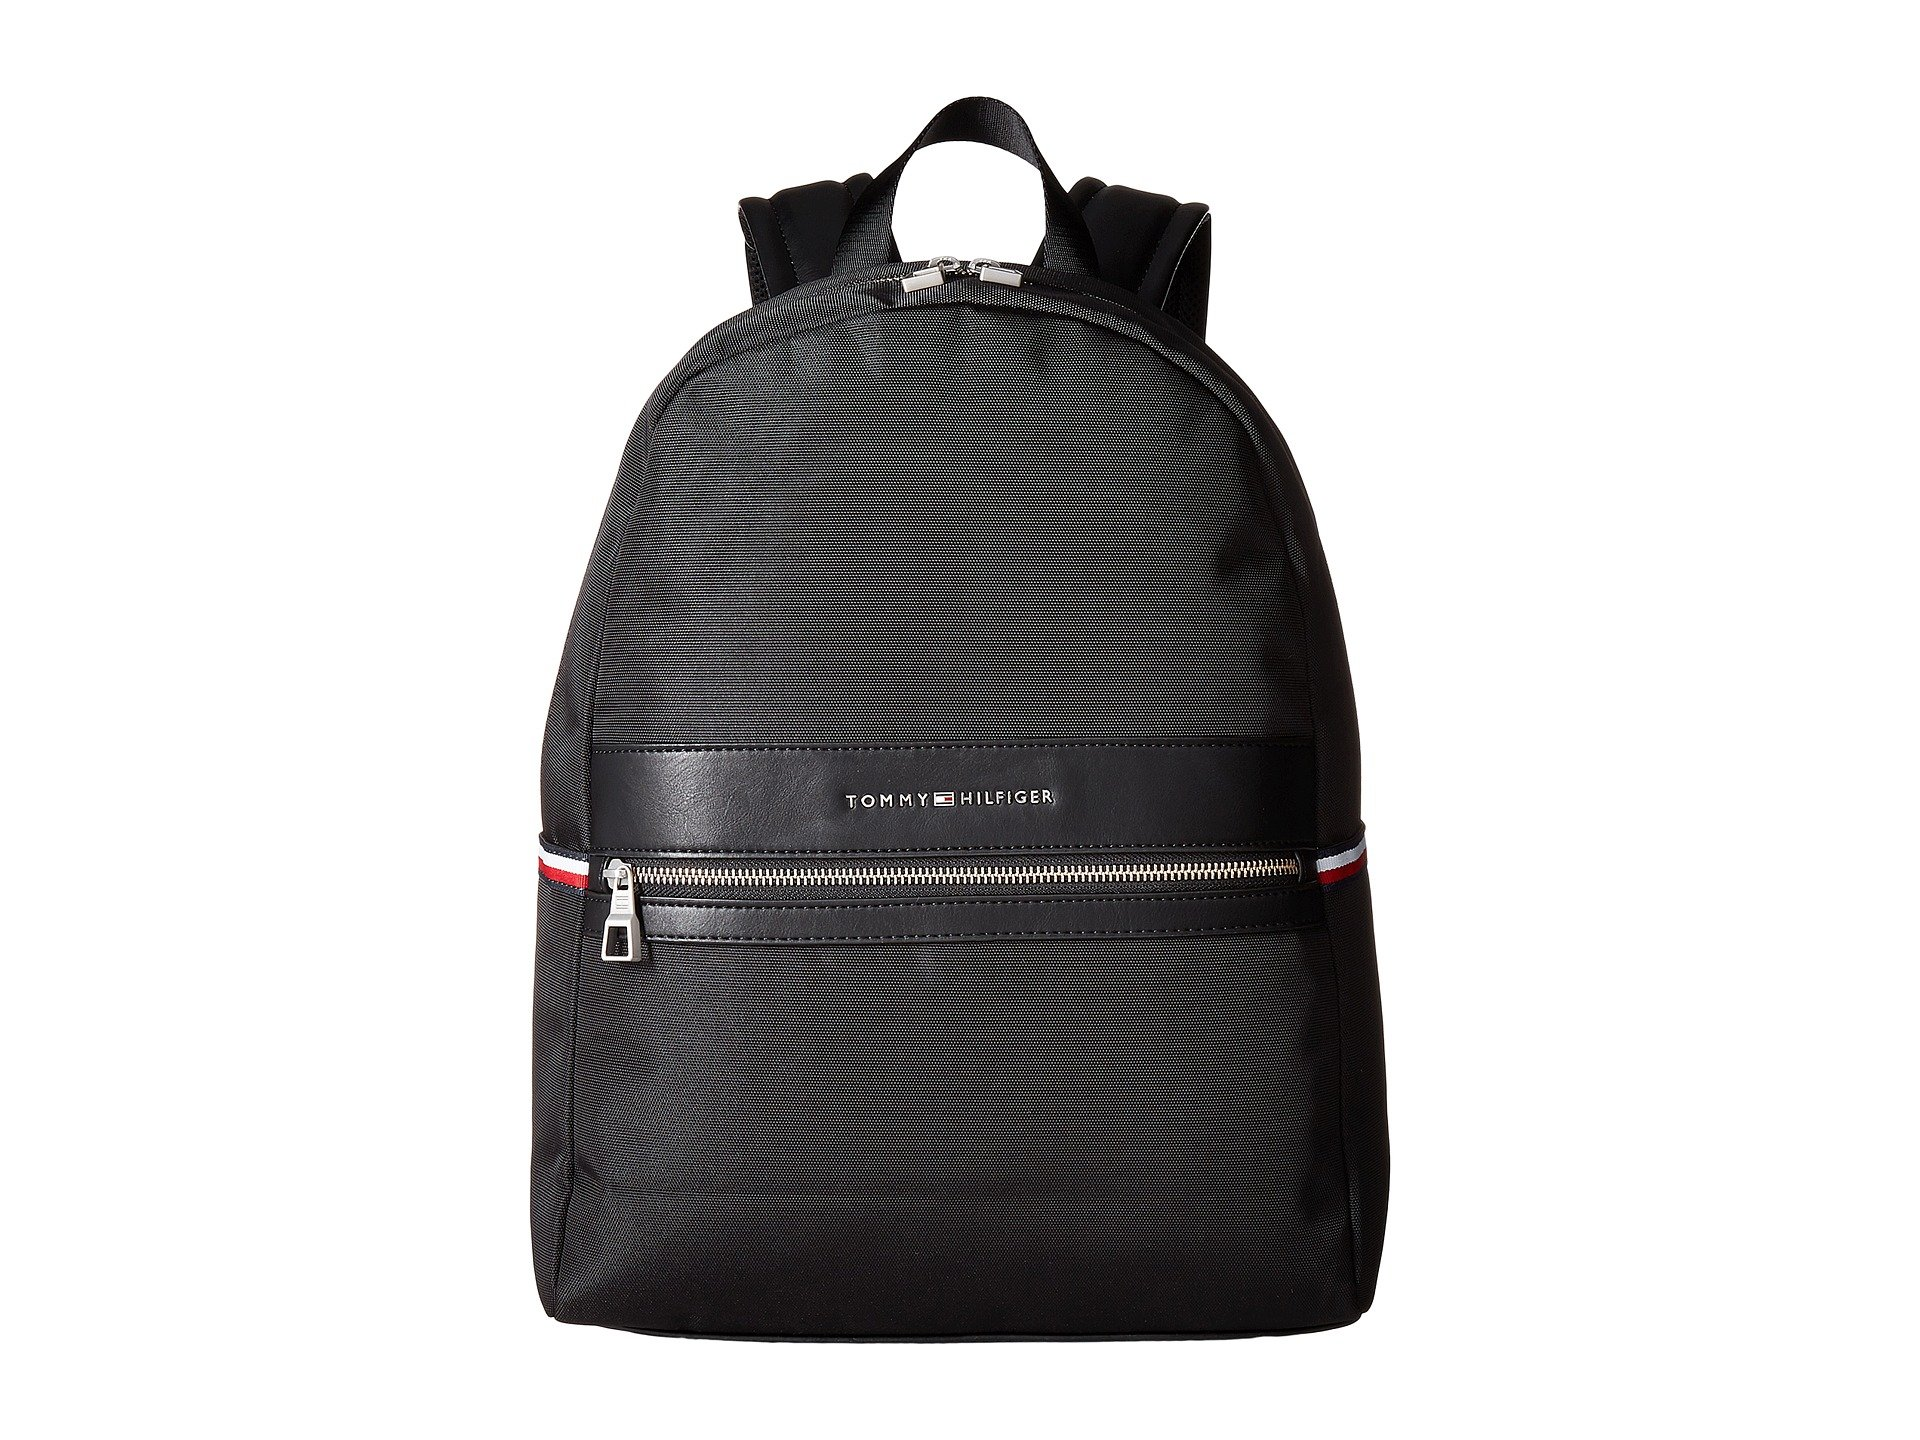 Morral para Hombre Tommy Hilfiger Essentials Backpack  + Tommy Hilfiger en VeoyCompro.net